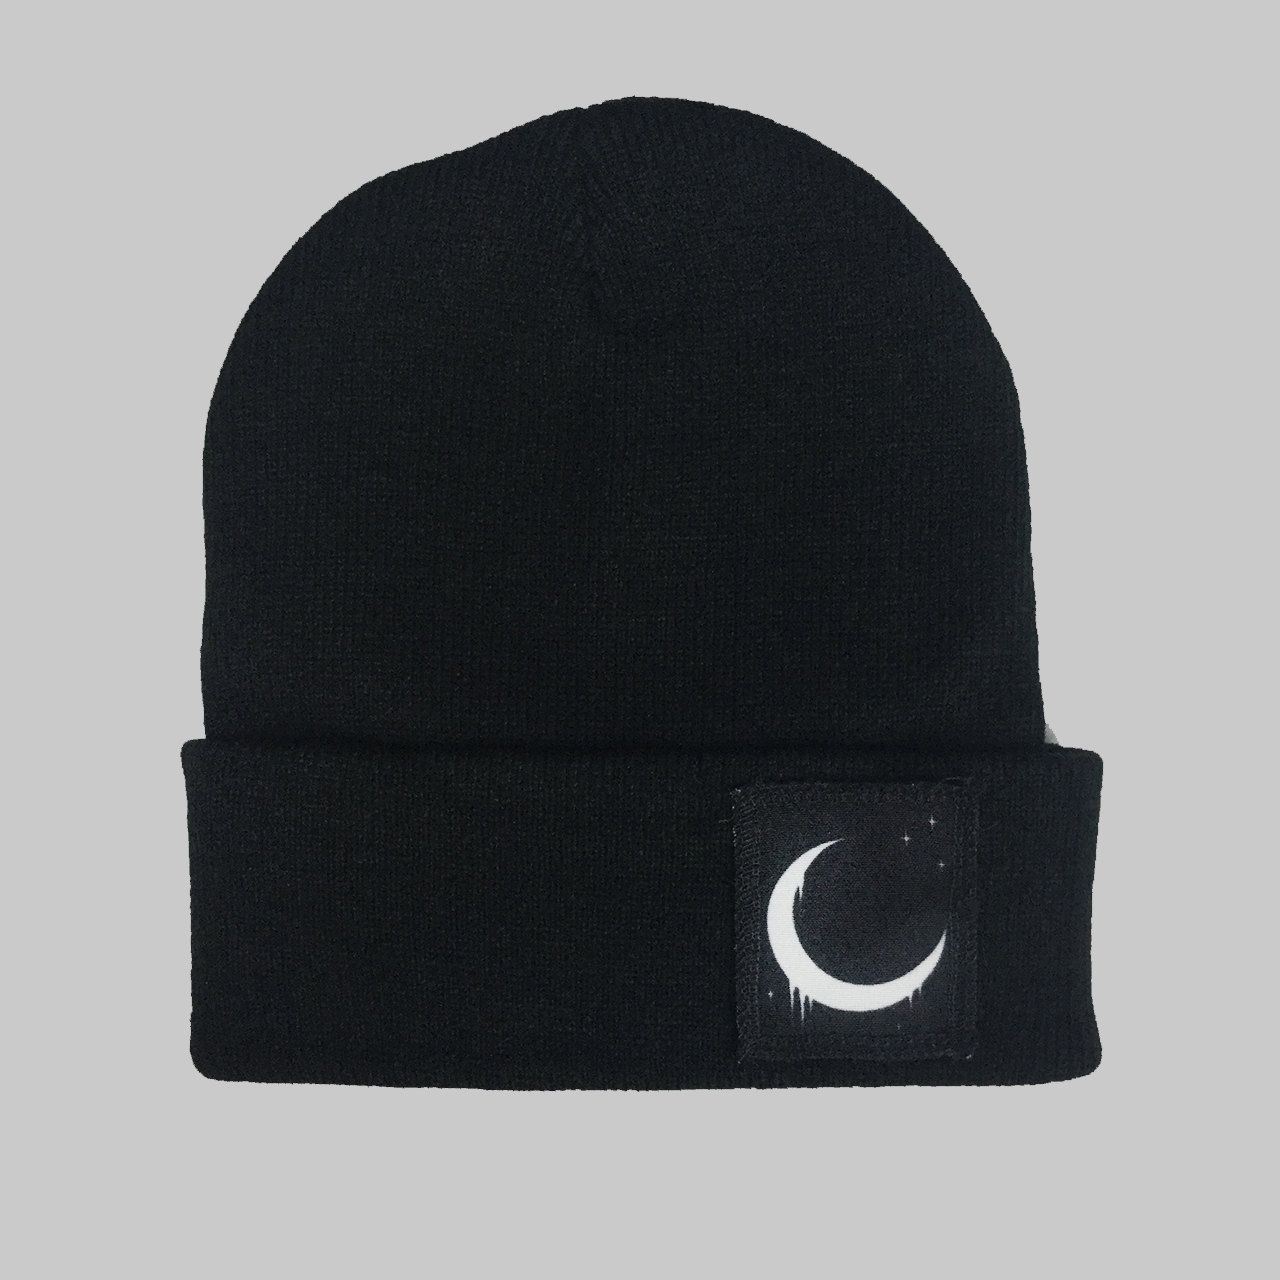 a02da44633a Crescent Moon Winter Beanie Headwear Hipster Indie Swag Dope Hype Black Hat  Beanie Mens Womens Cute Slouchy Hat Space Lunar Cycle by IIMVCLOTHING on  Etsy